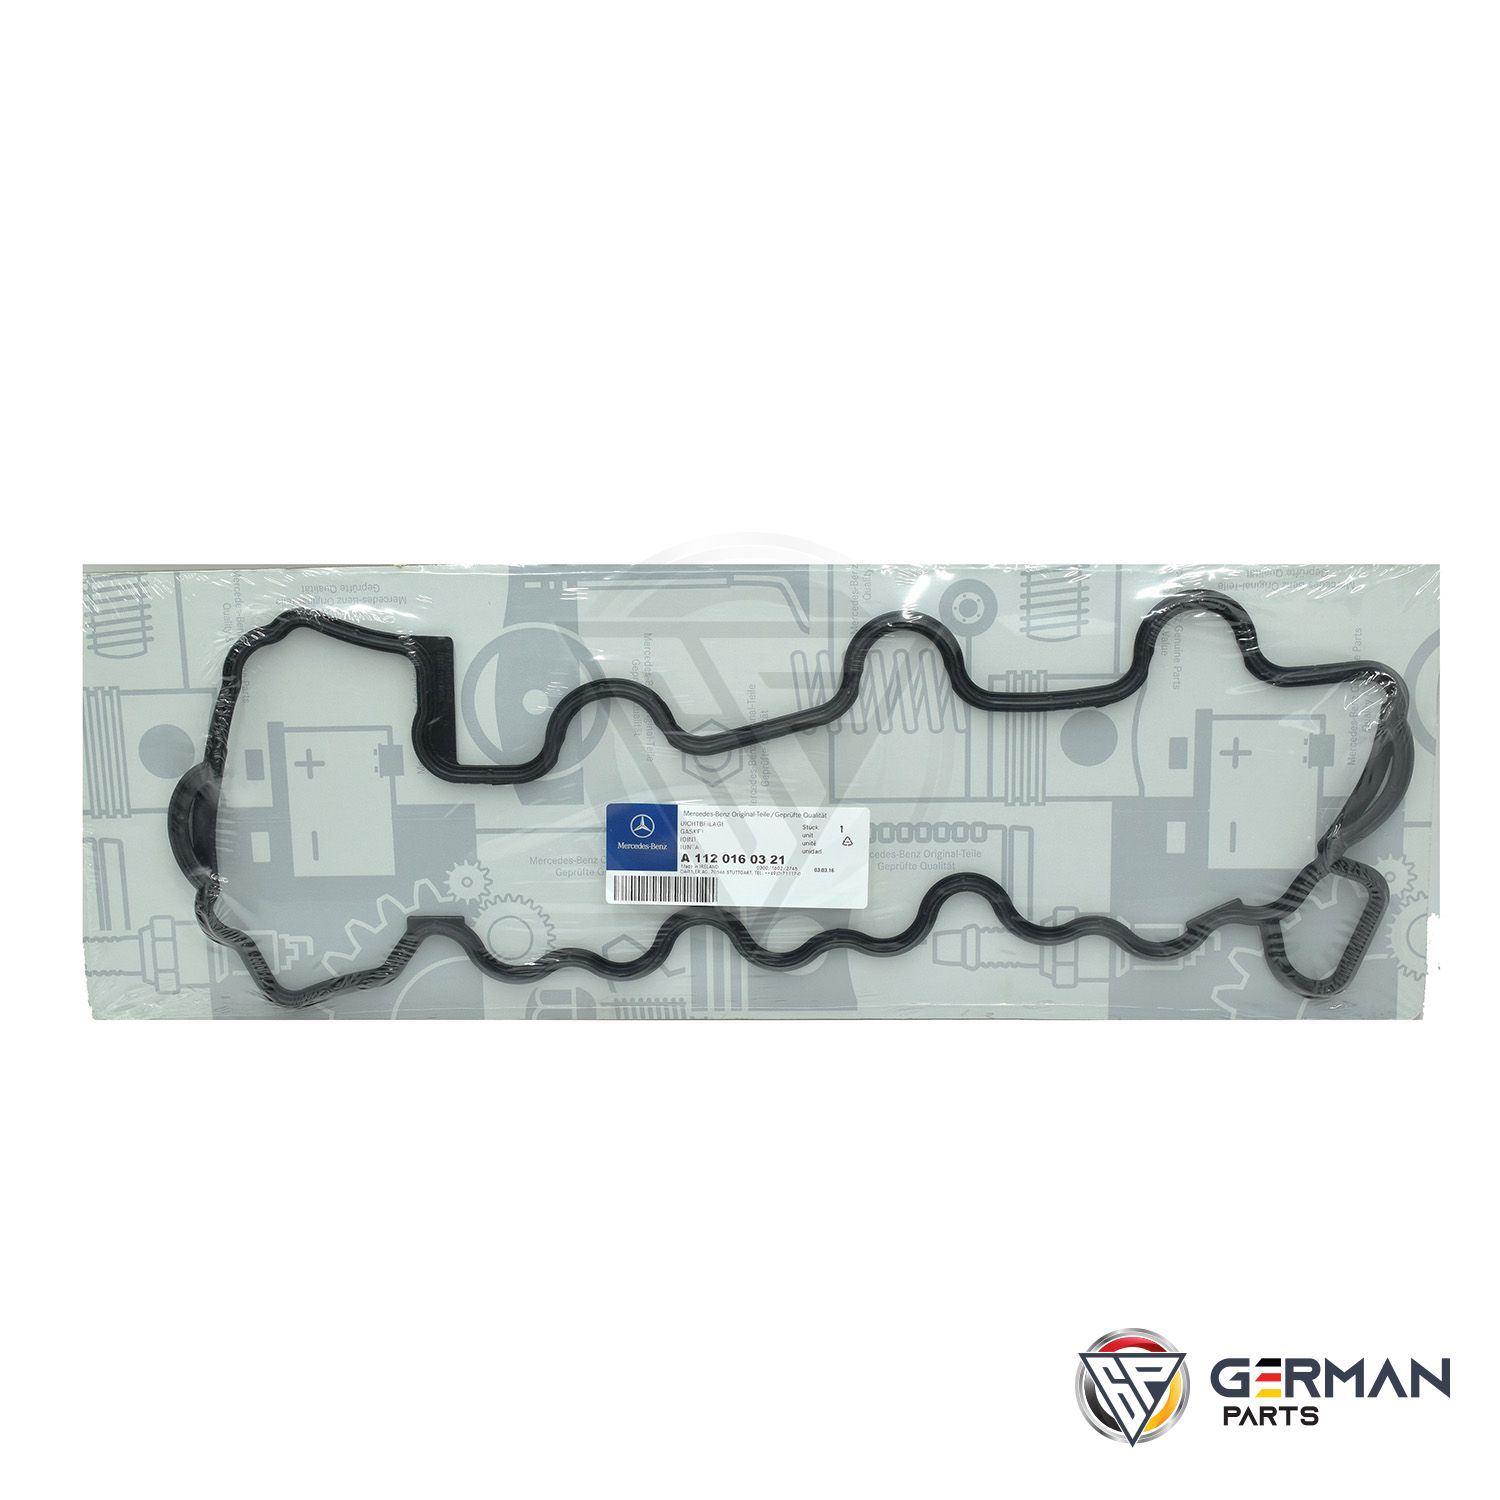 Buy Mercedes Benz Valve Cover Gasket Right 1120160321 - German Parts